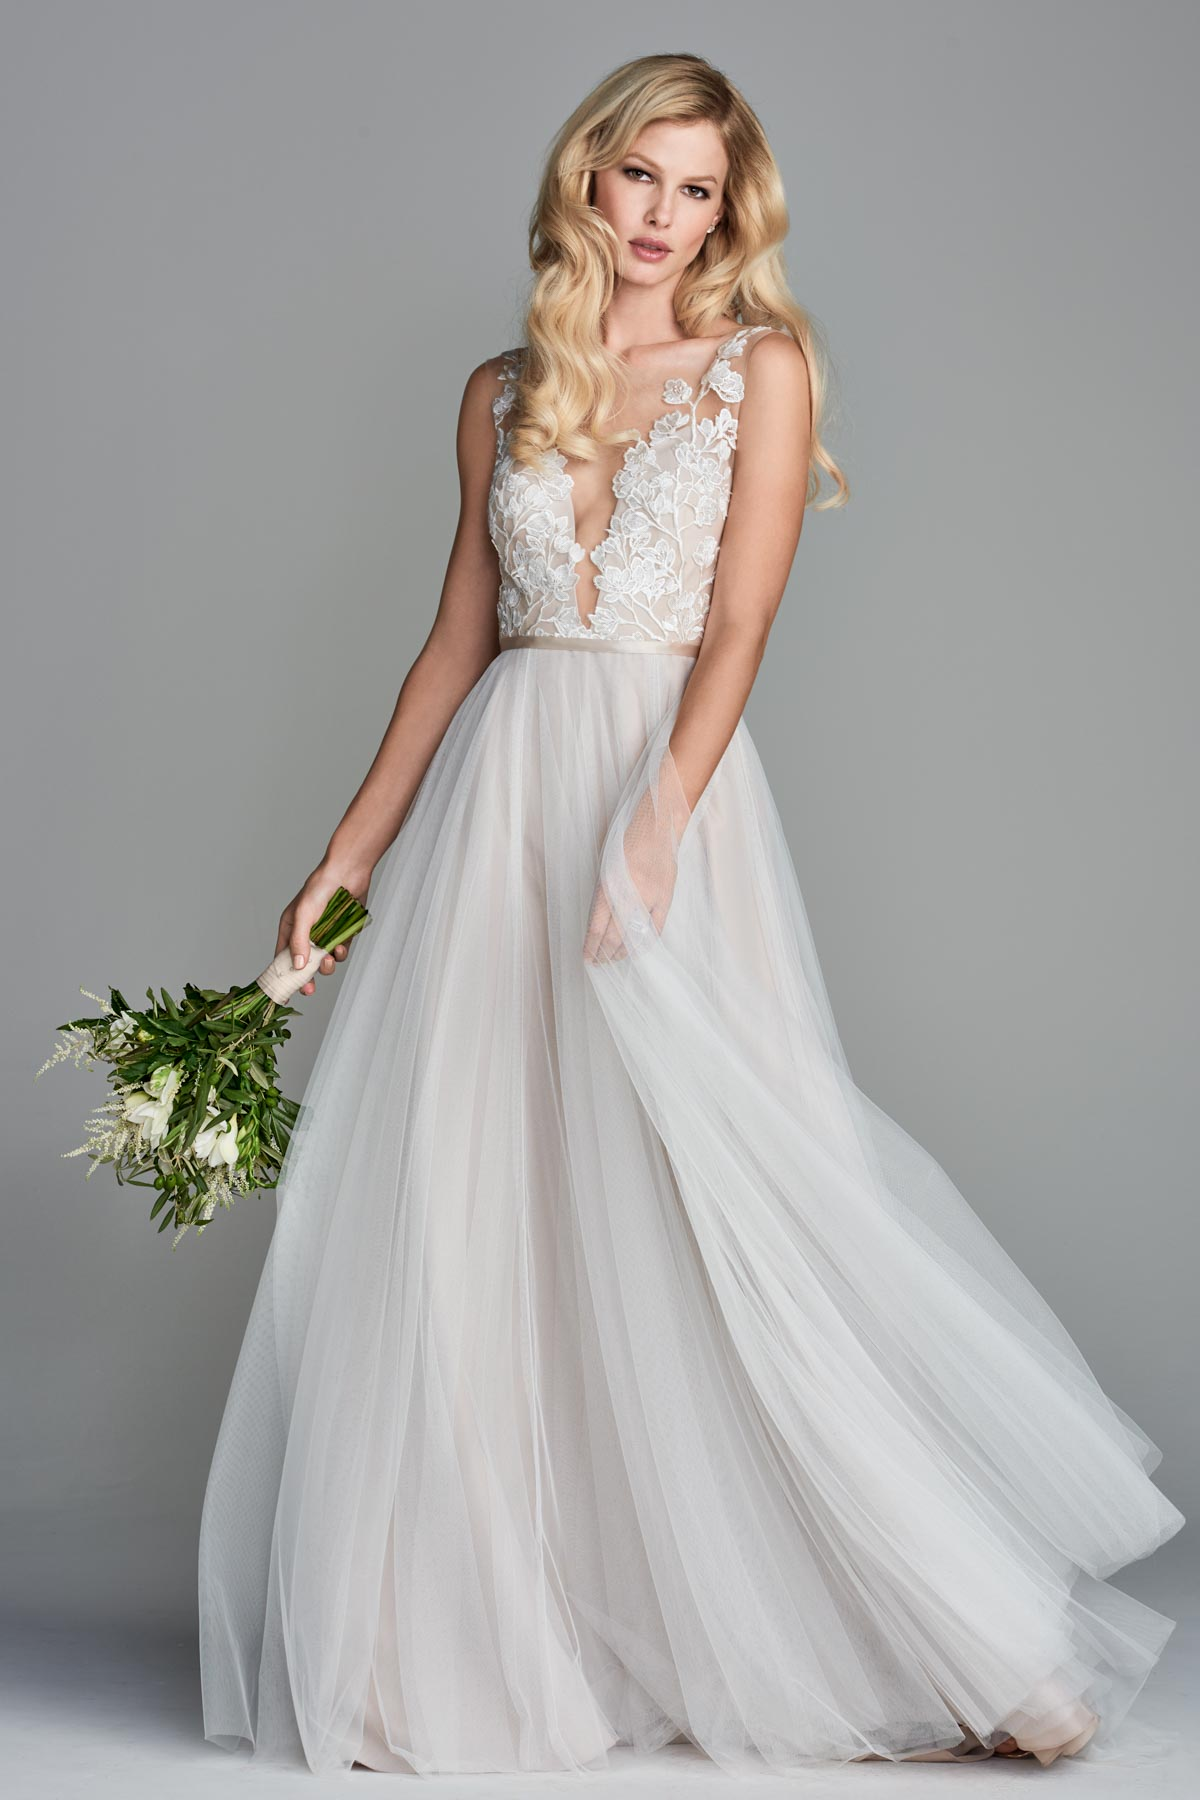 Bridal boutique lewisville wtoo ombrellifo Choice Image